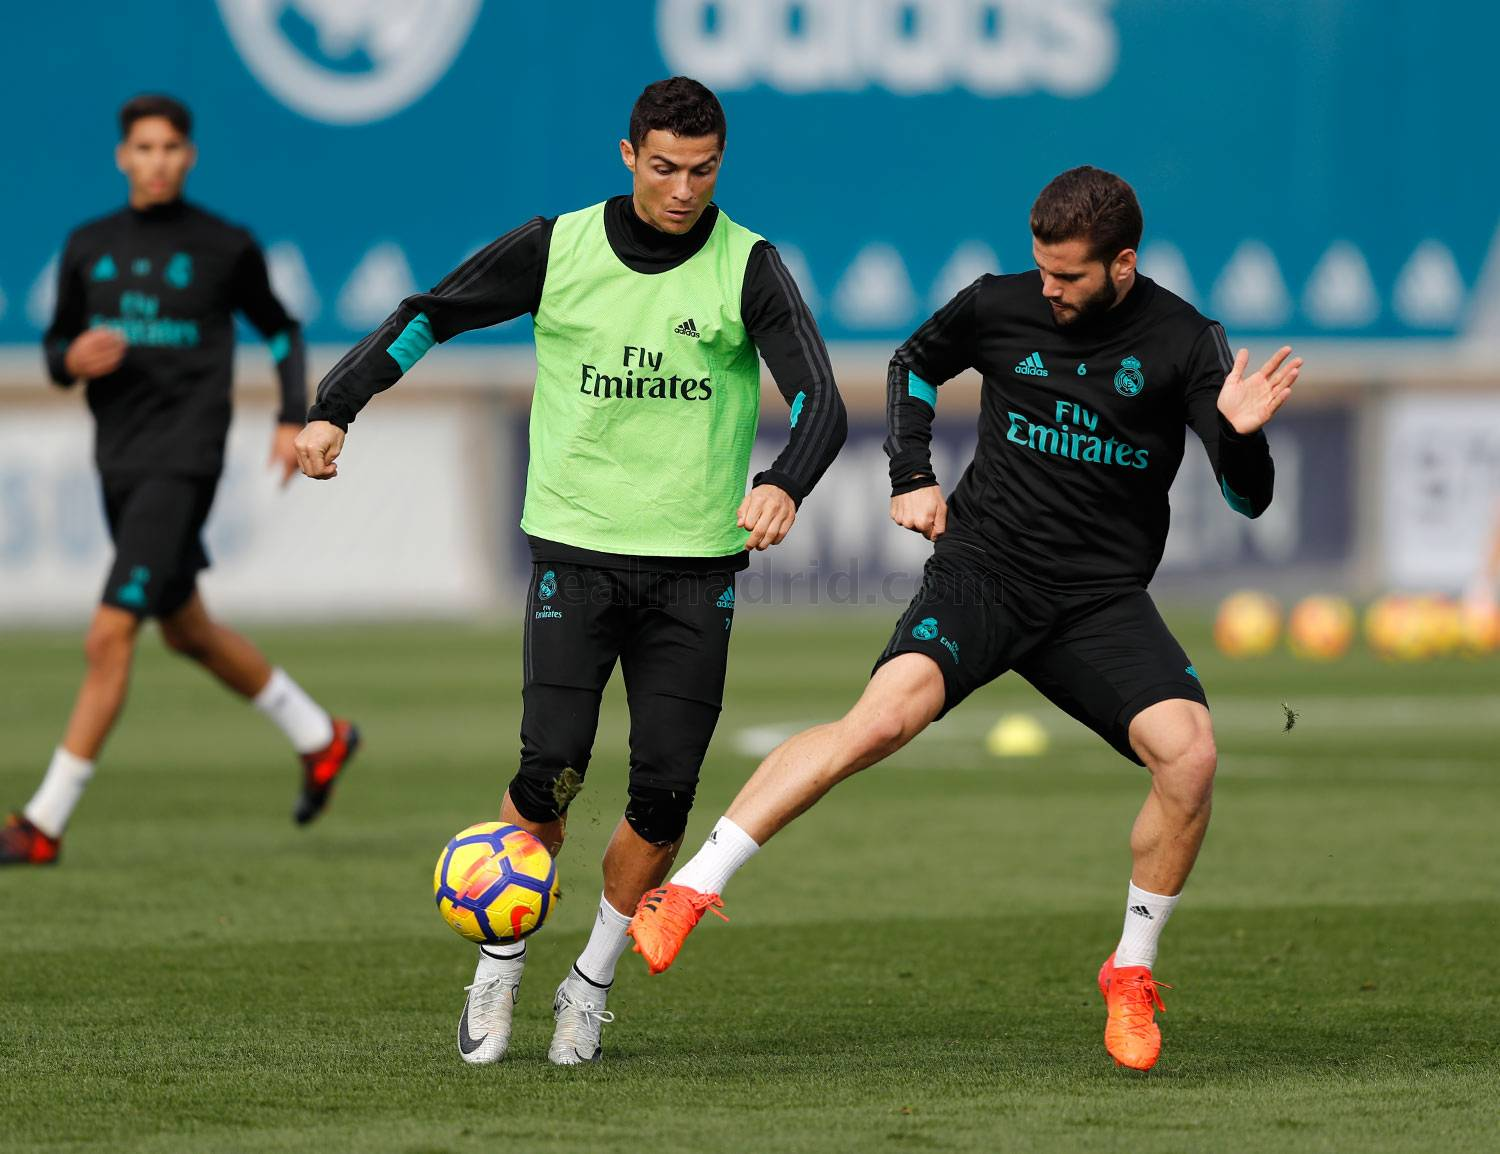 Real Madrid - Entrenamiento del Real Madrid - 03-11-2017